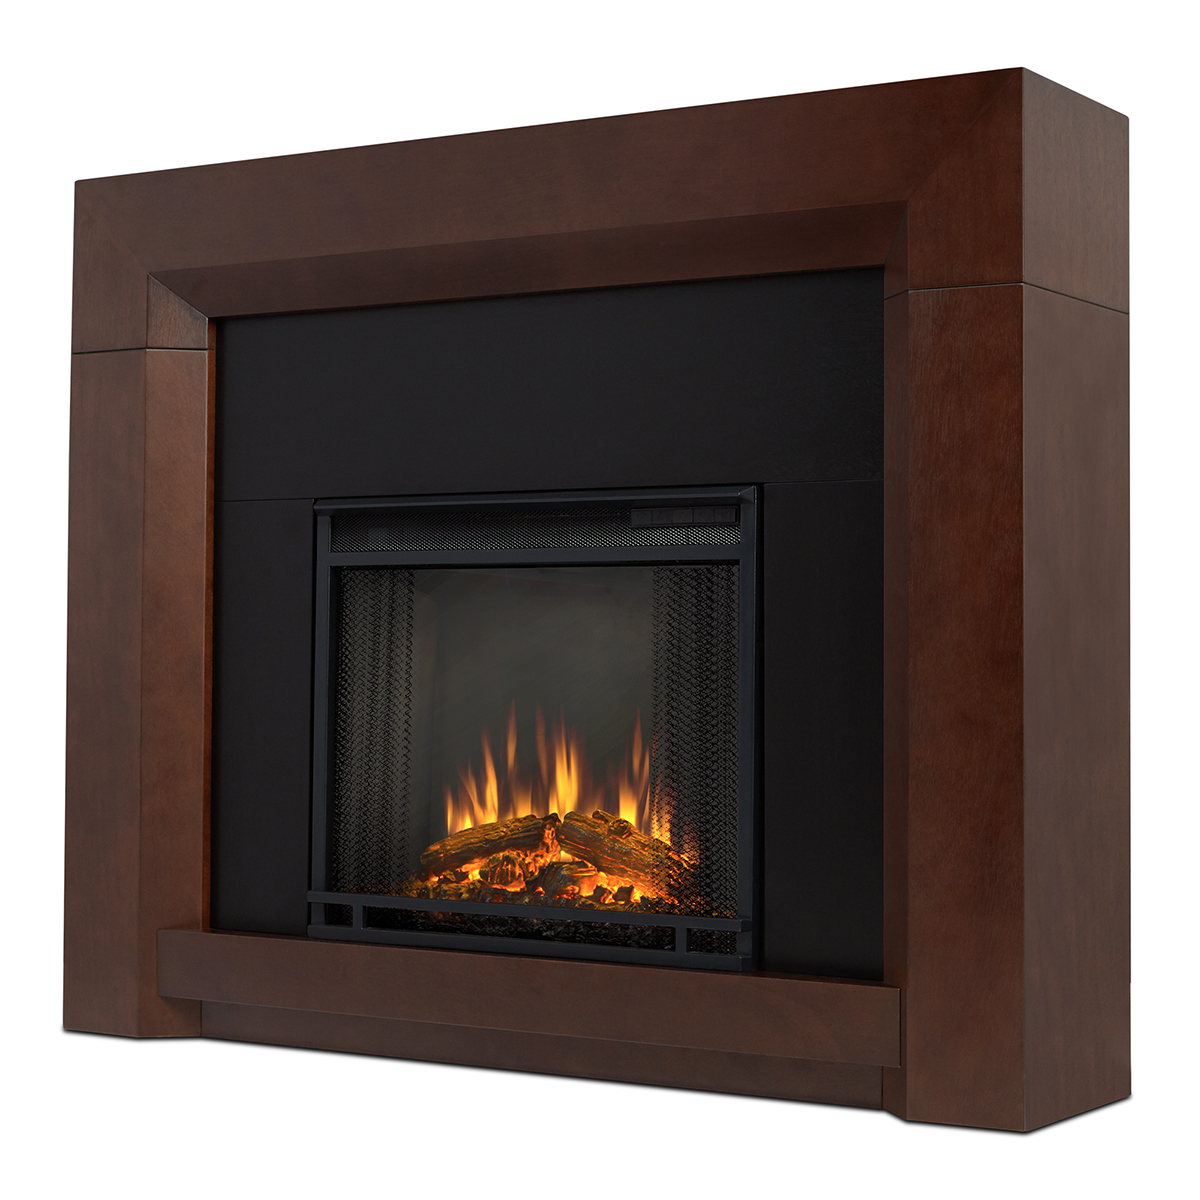 Real Flame 4001e Dw Colton Indoor Ventless Electric Fireplace In Dark Walnut W Black Surround